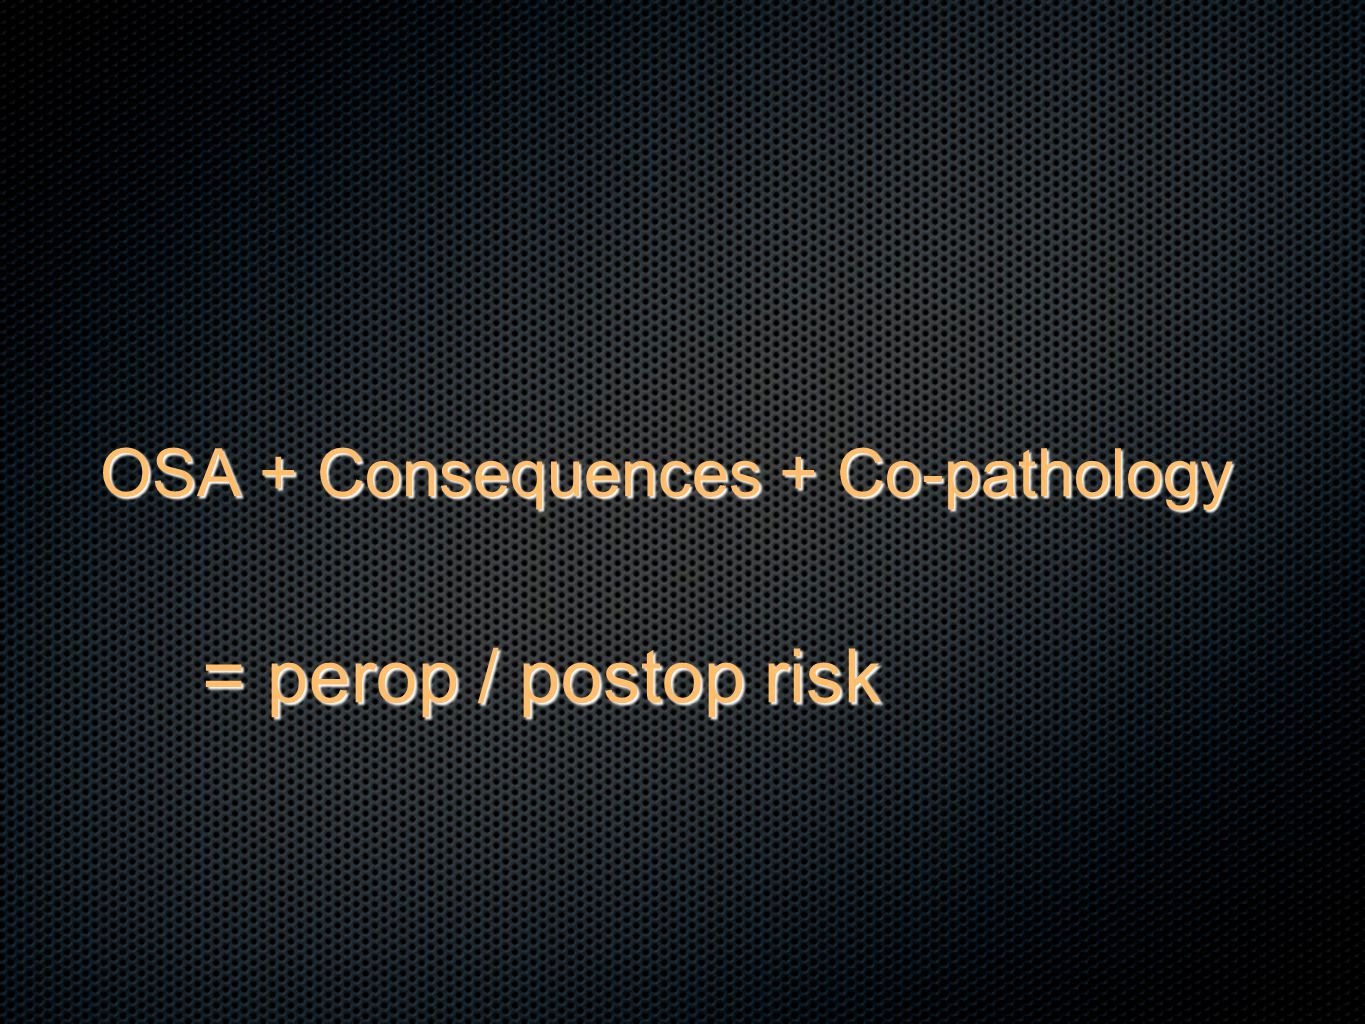 OSA + Consequences + Co-pathology = perop / postop risk = perop / postop risk